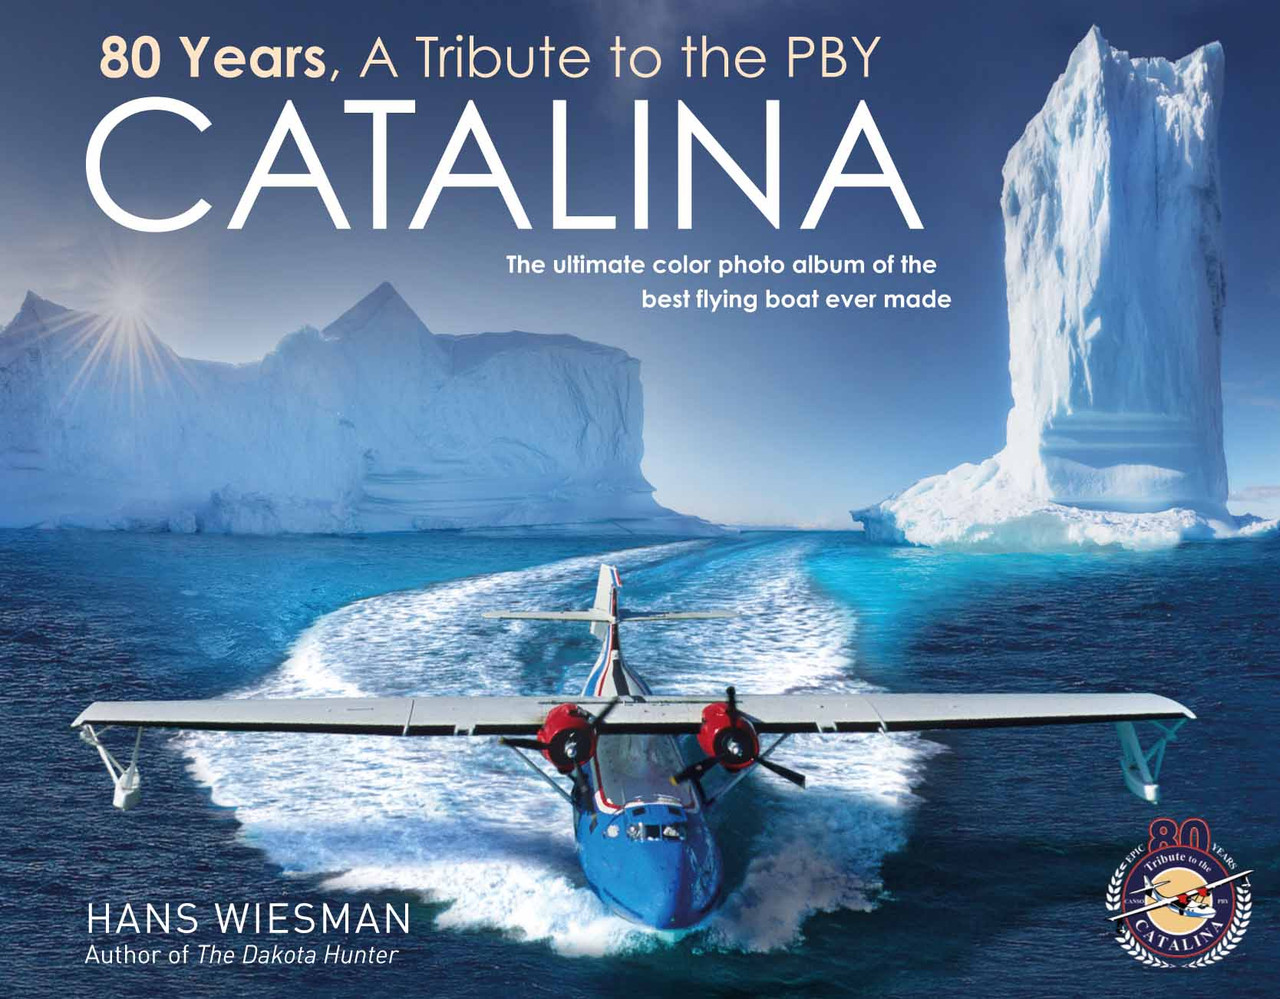 80 Years, a tribute to the PBY Catalina:The ultimate color photo album of the best flying boat ever made